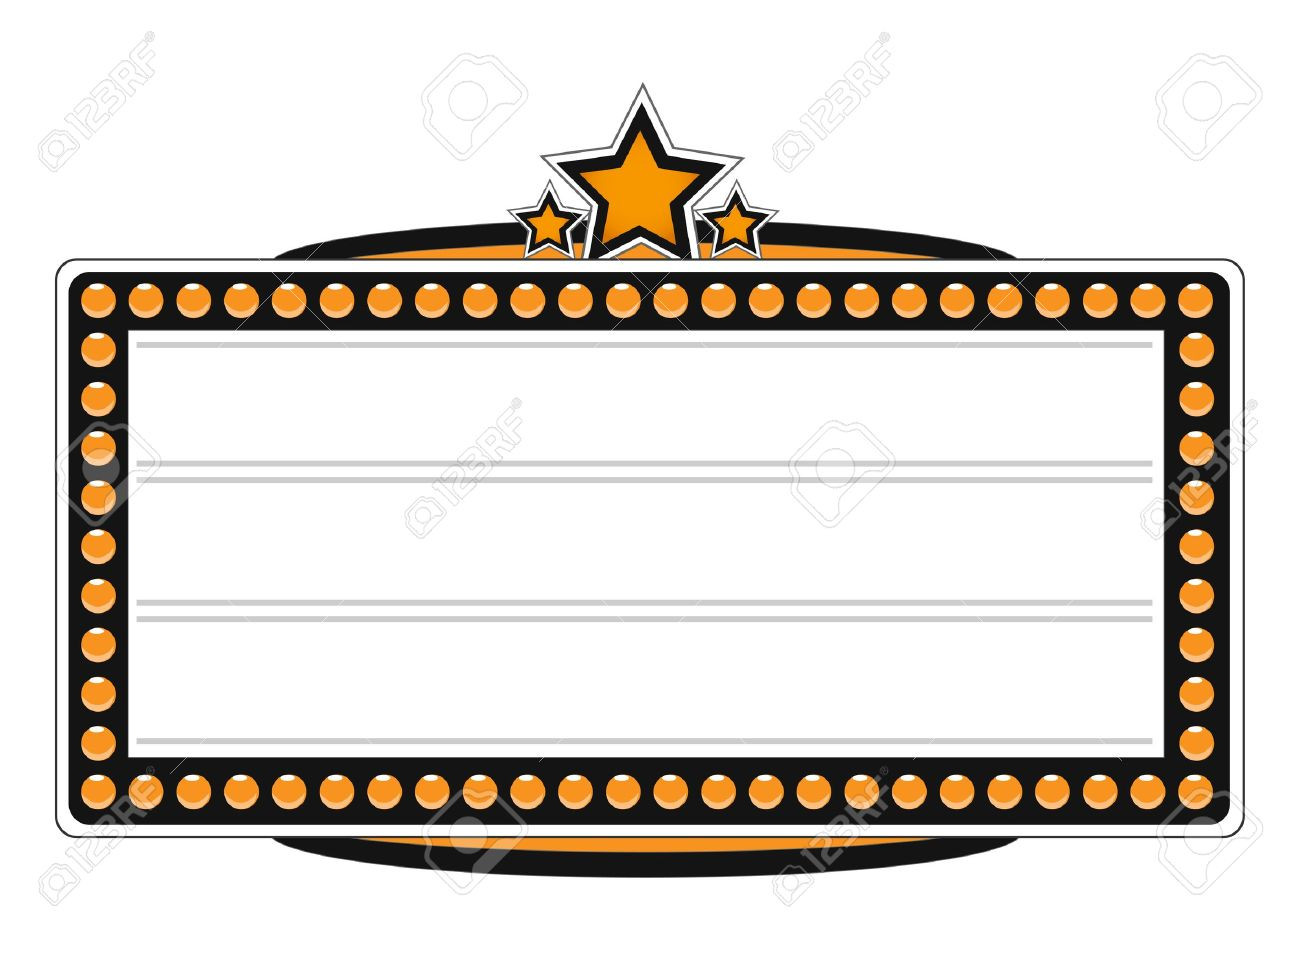 Template free freetmplts collection. Marquee clipart